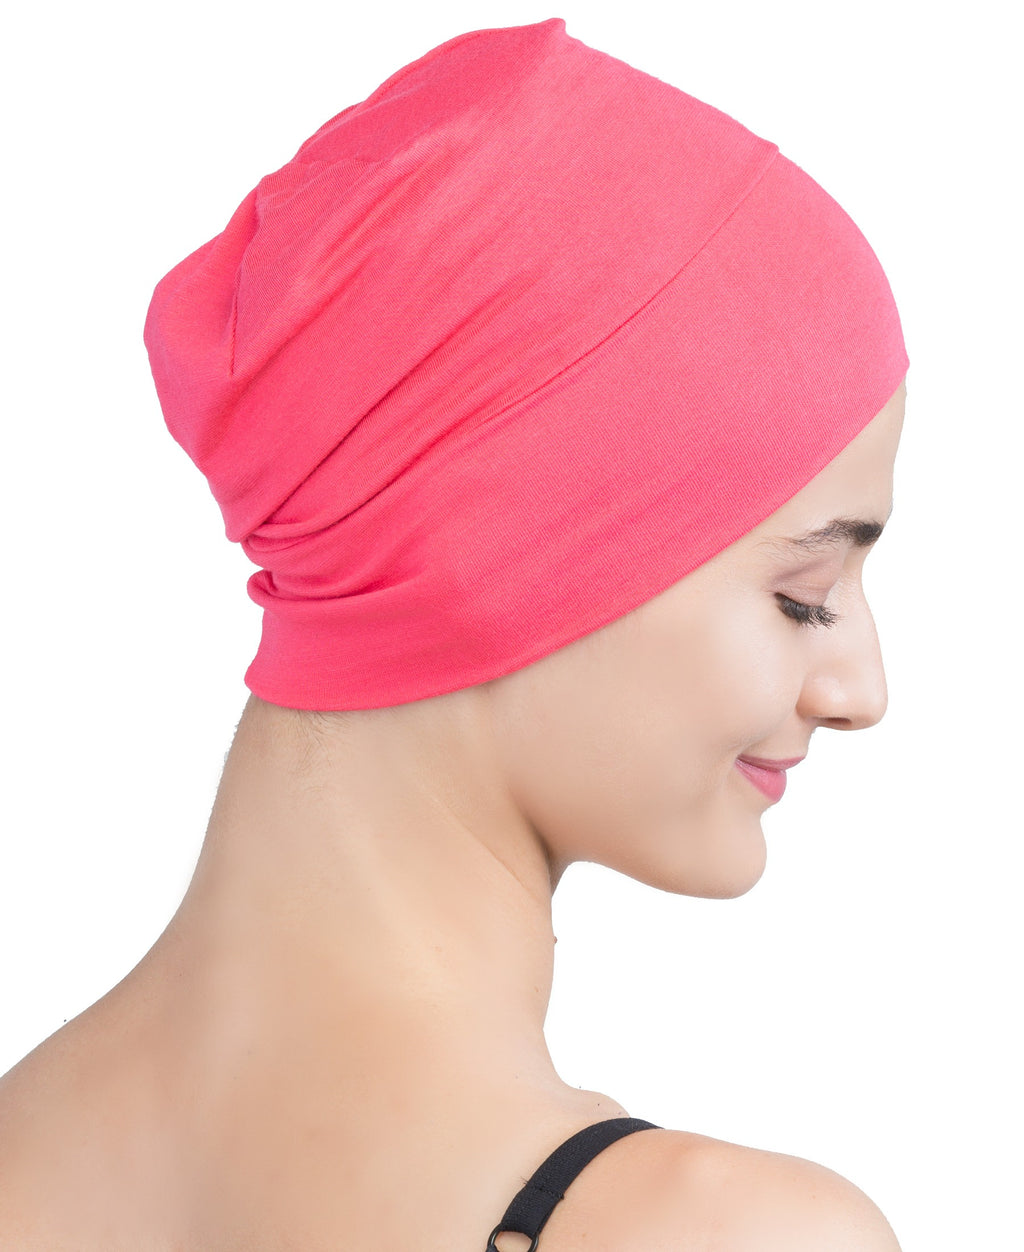 Wrap-fit Sleep Cap - Coral